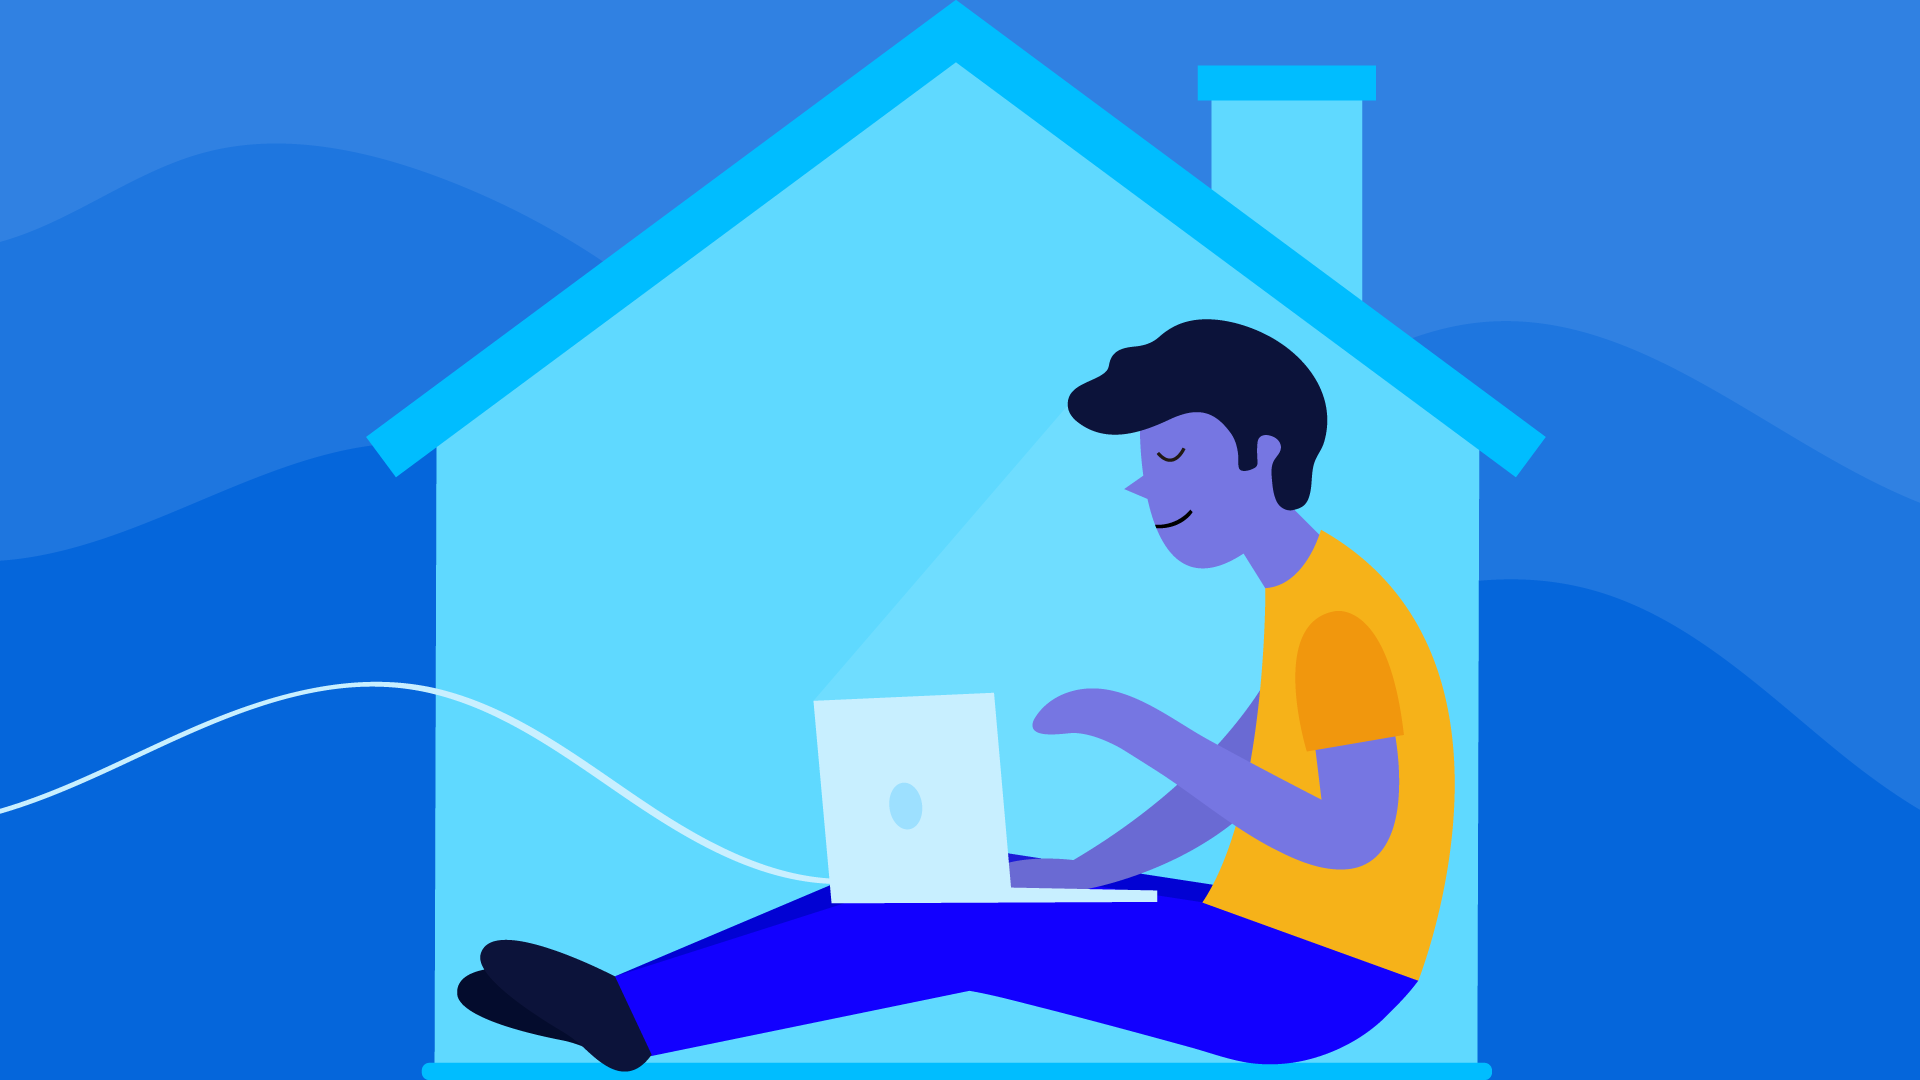 How to make work from home more enjoyable?